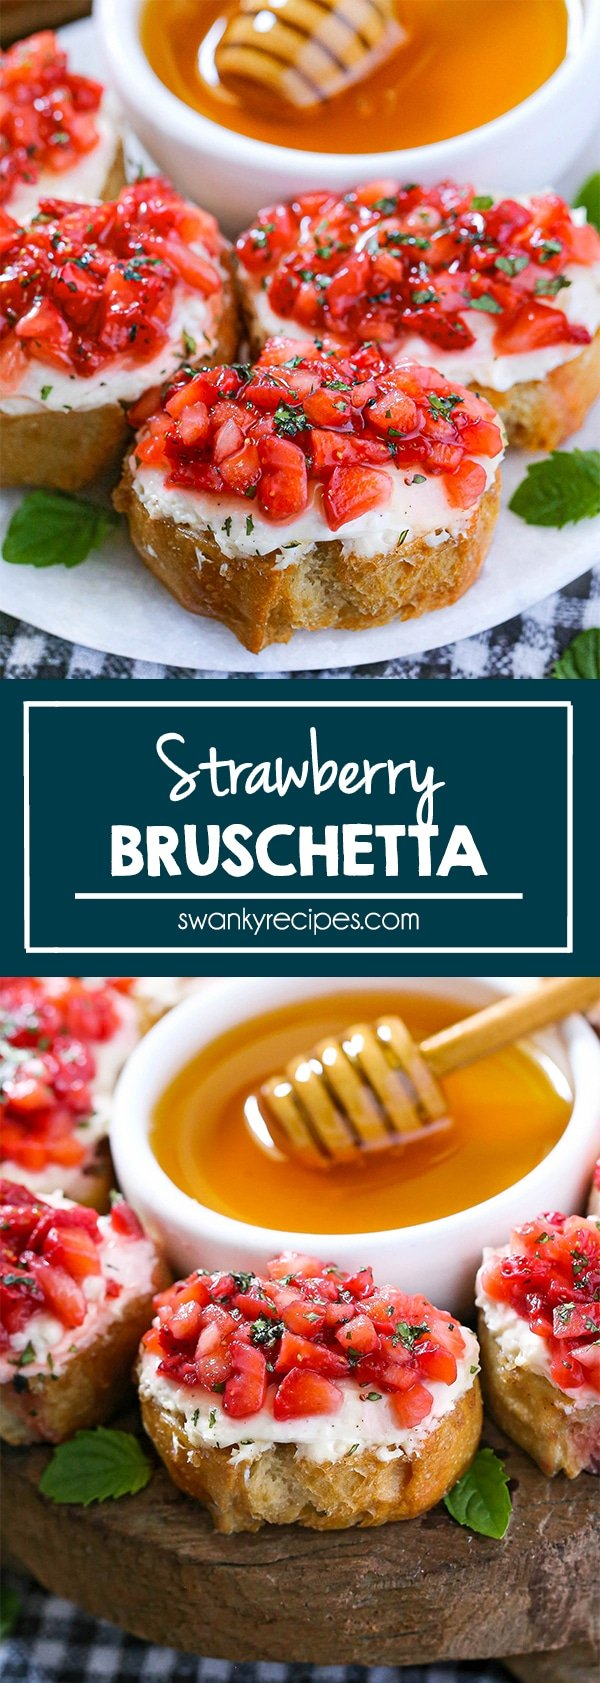 A plate of Strawberry Bruschetta with toasted slices of bread that is topped with a layer of cream cheese, freshly diced strawberries, chopped mint, and a drizzle of honey. Text in center reads strawberry bruschetta. Second image features the bruschetta served on a wooden platter with a bowl of honey in the center.